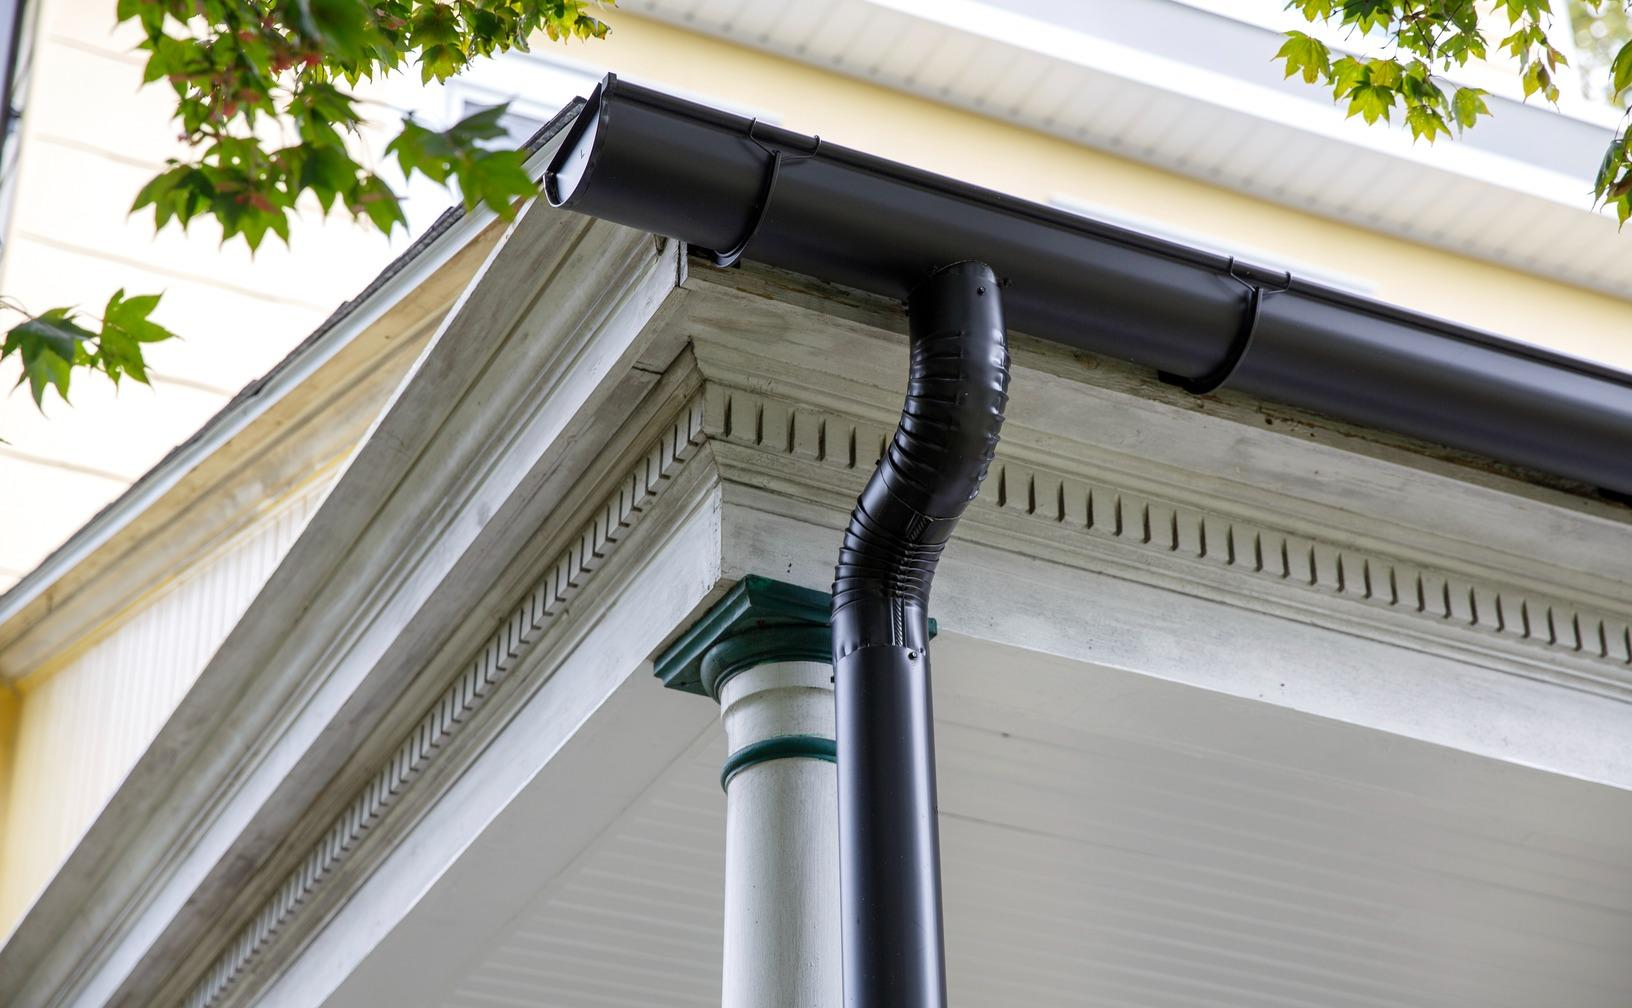 New Gutters Install in Hatboro, Pa - After Photo